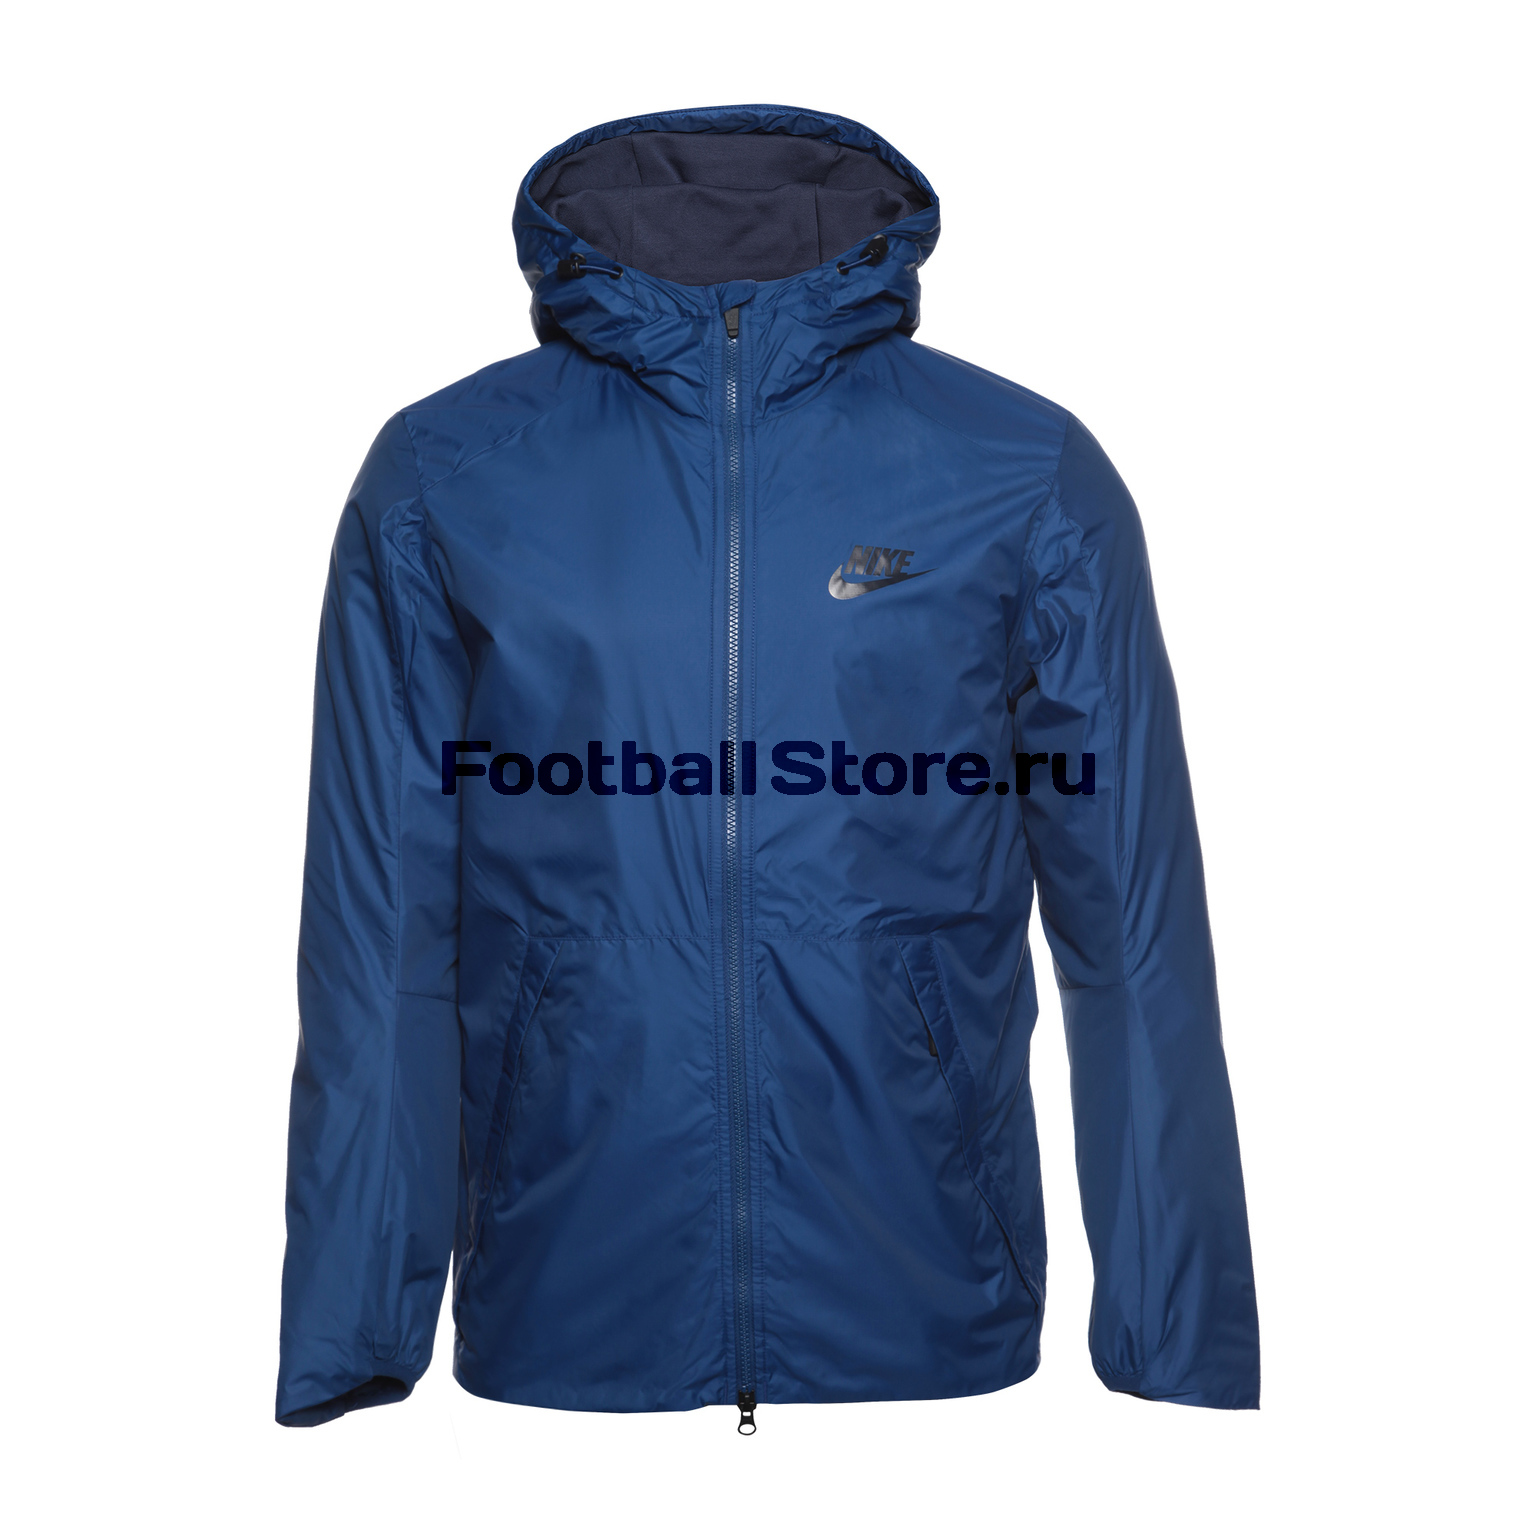 Куртка Nike M NSW SYN Fill HD Jacket 806854-423